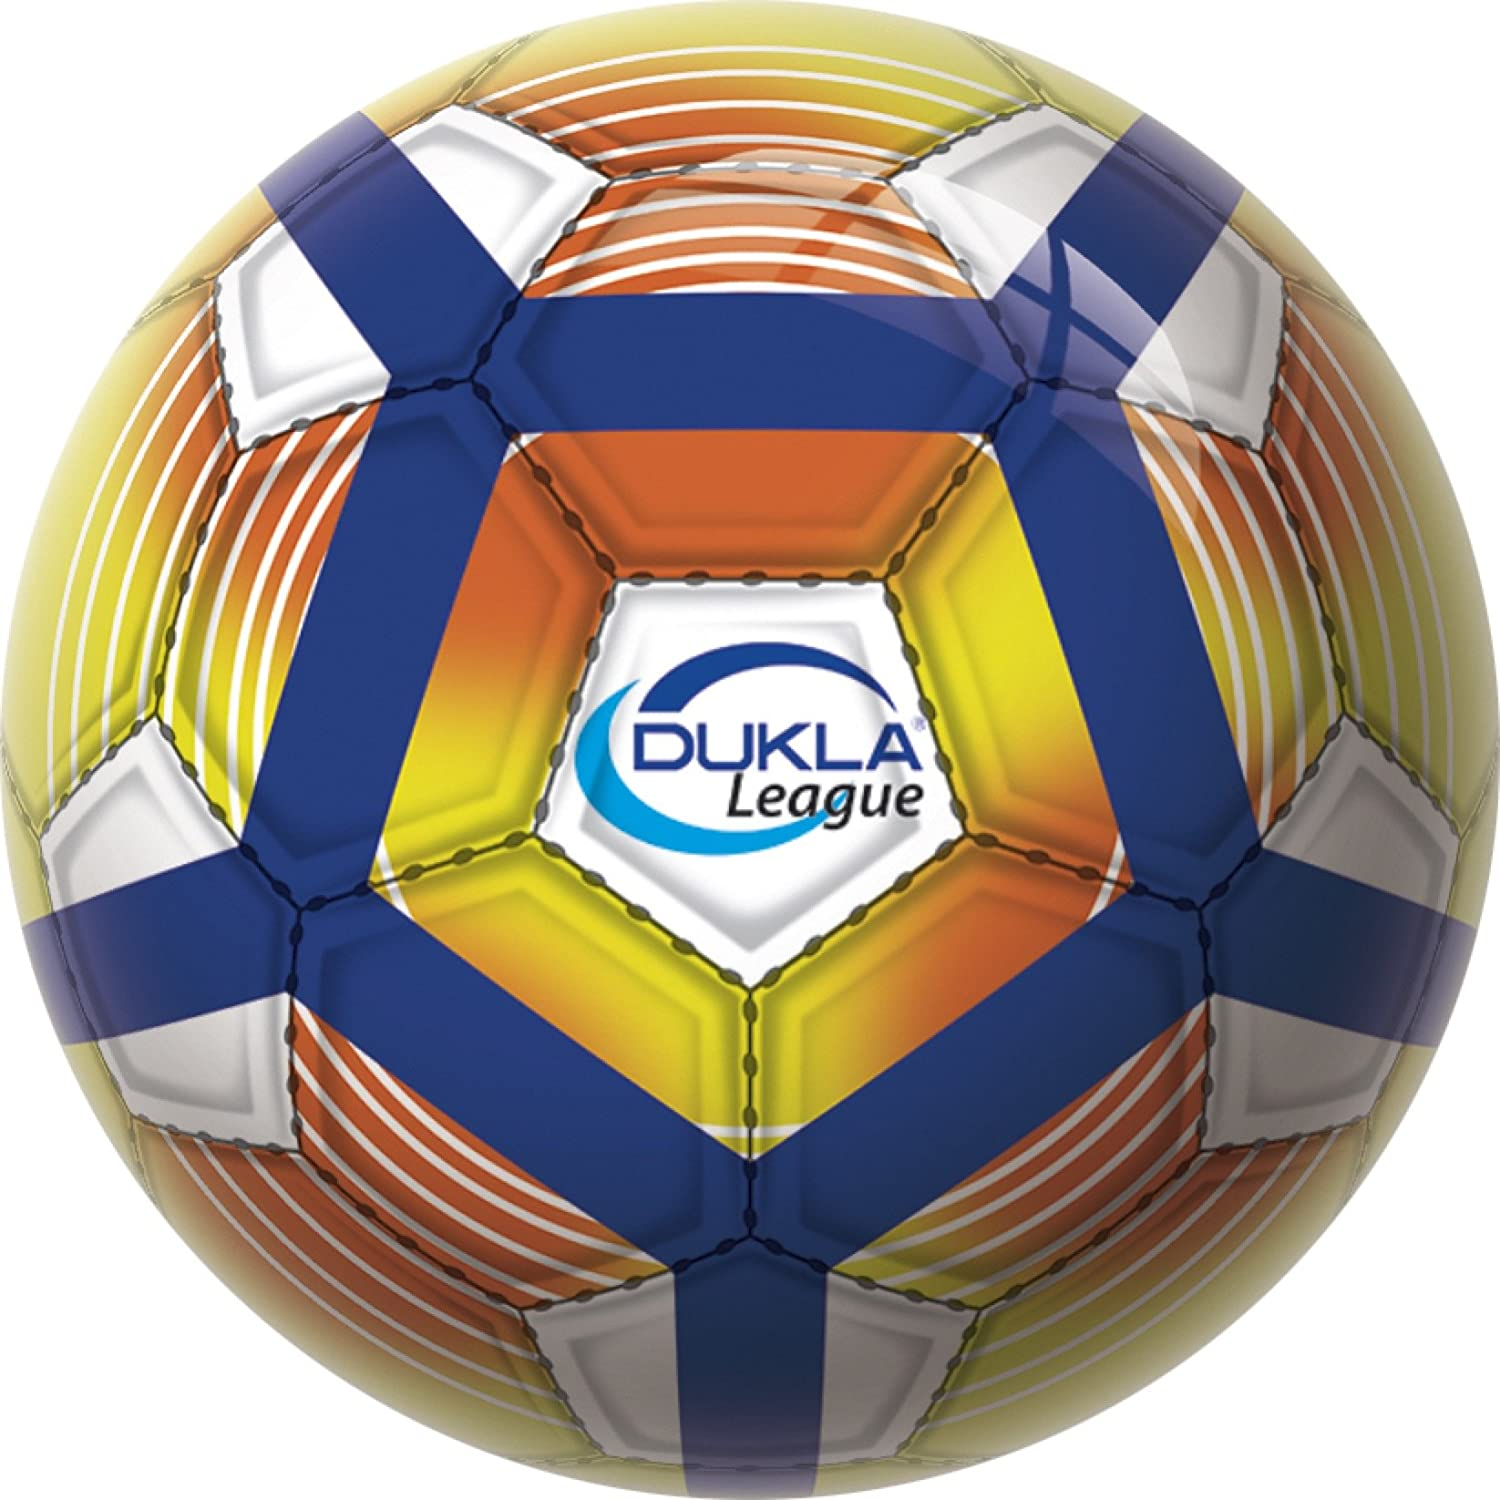 Mondo - Balón fútbol Dukla League, 230 mm (0735): Amazon.es ...